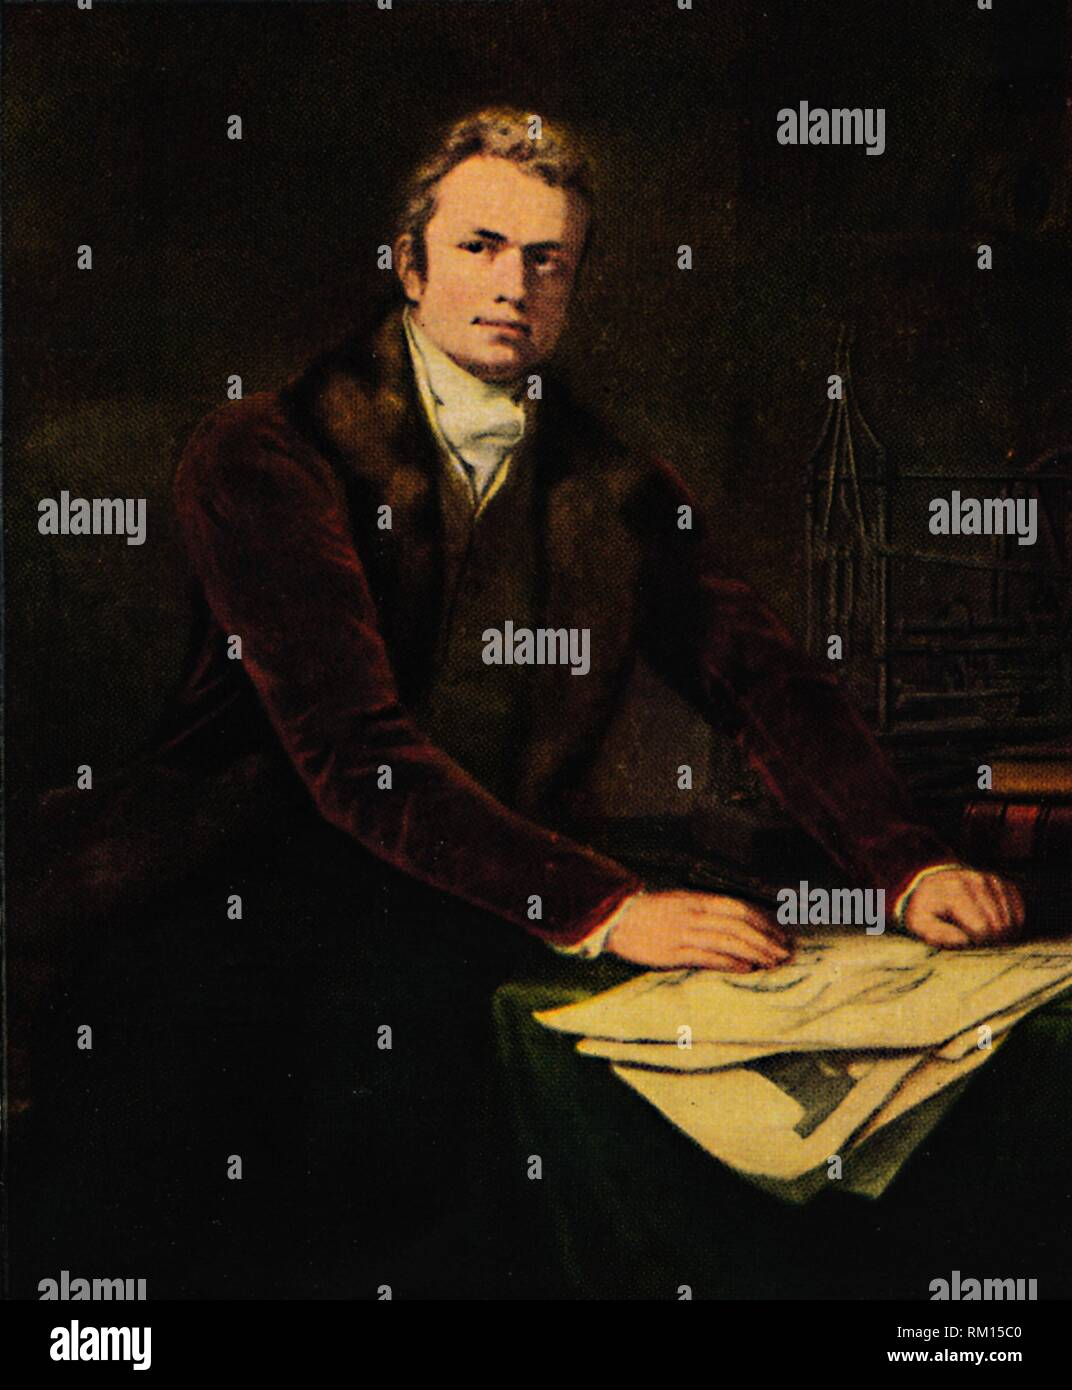 'Pathfinders - Sir Marc Isambard Brunel', c1812, (1922). Portrait of Sir Marc Isambard Brunel, British engineer and inventor (1769-1849) with drawings and a model of the morticing machine of the Portsmouth blockmaking machine he made with machine builder Henry Maudslay. The blockmaking machine introduced the mass production of ships' blocks. From 1825, Brunel was engaged, along with his son Isambard Kingdom Brunel, to construct the first Thames tunnel, which was completed in 1843. He also improved saw-mills and dockyard machinery at Chatham in Kent and Liverpool. Painting in the National Portr - Stock Image